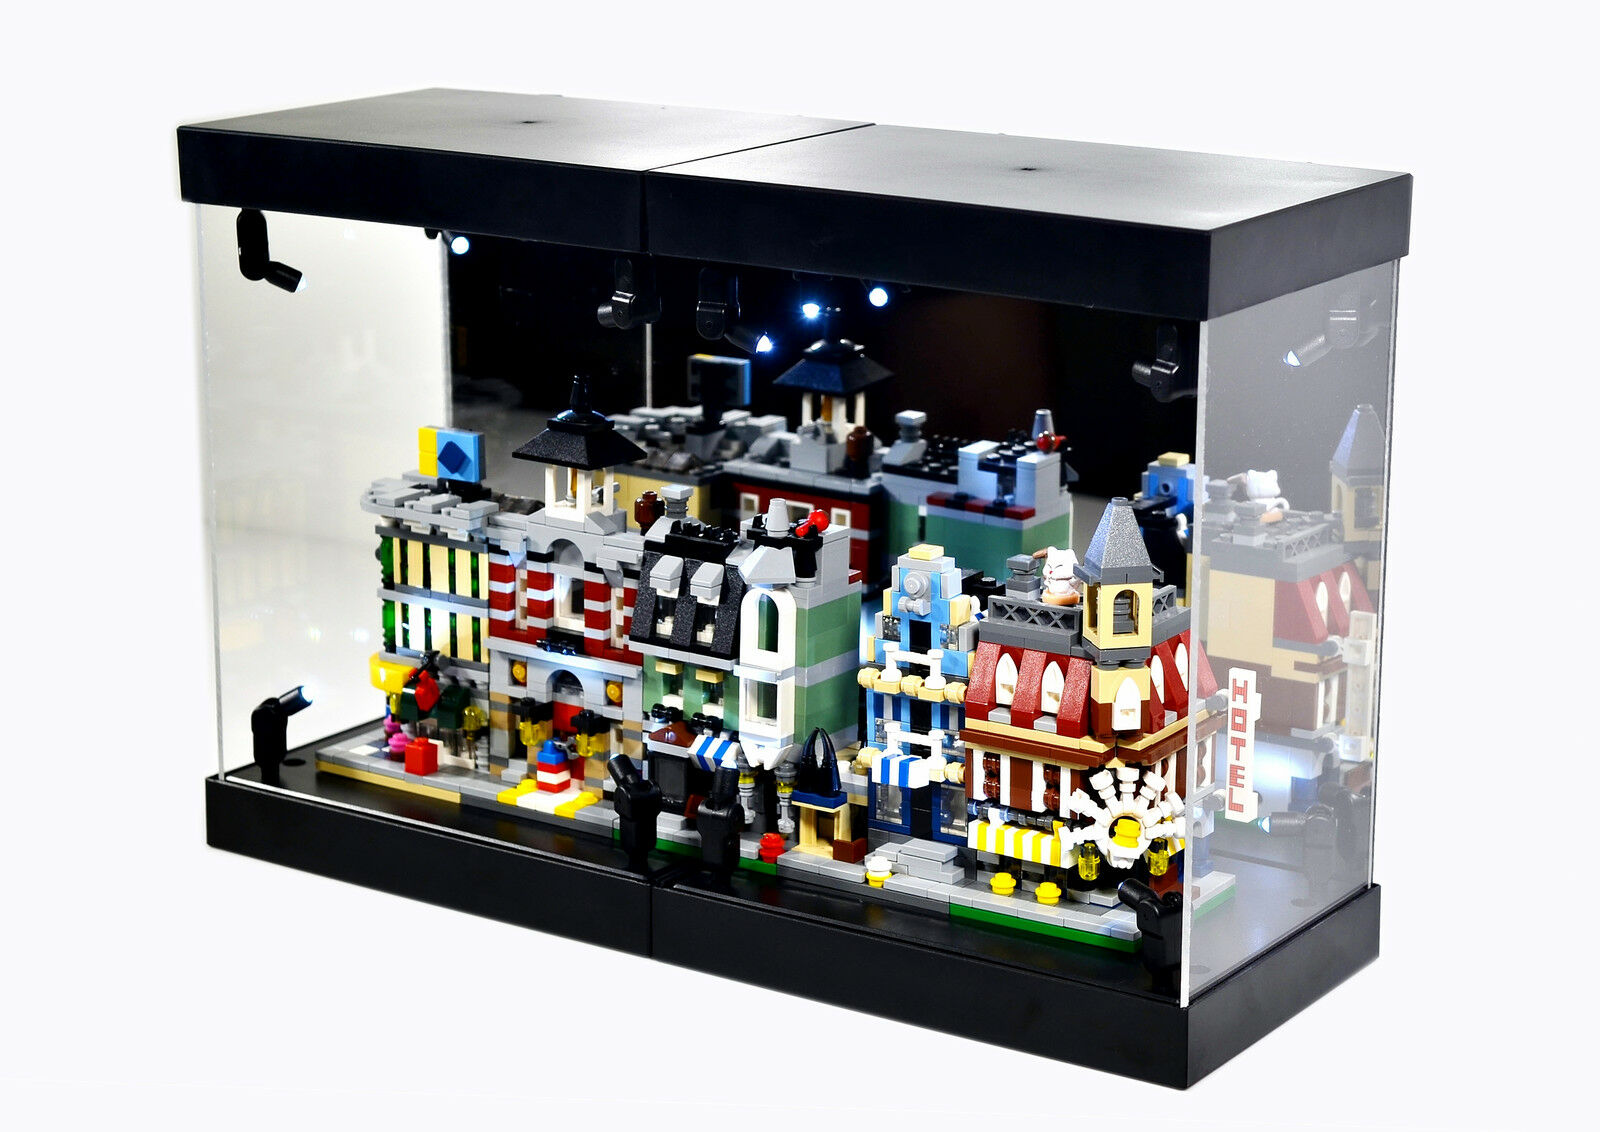 Acrylic Display Case LED Light Box for LEGO 10230 mini modulars modular building